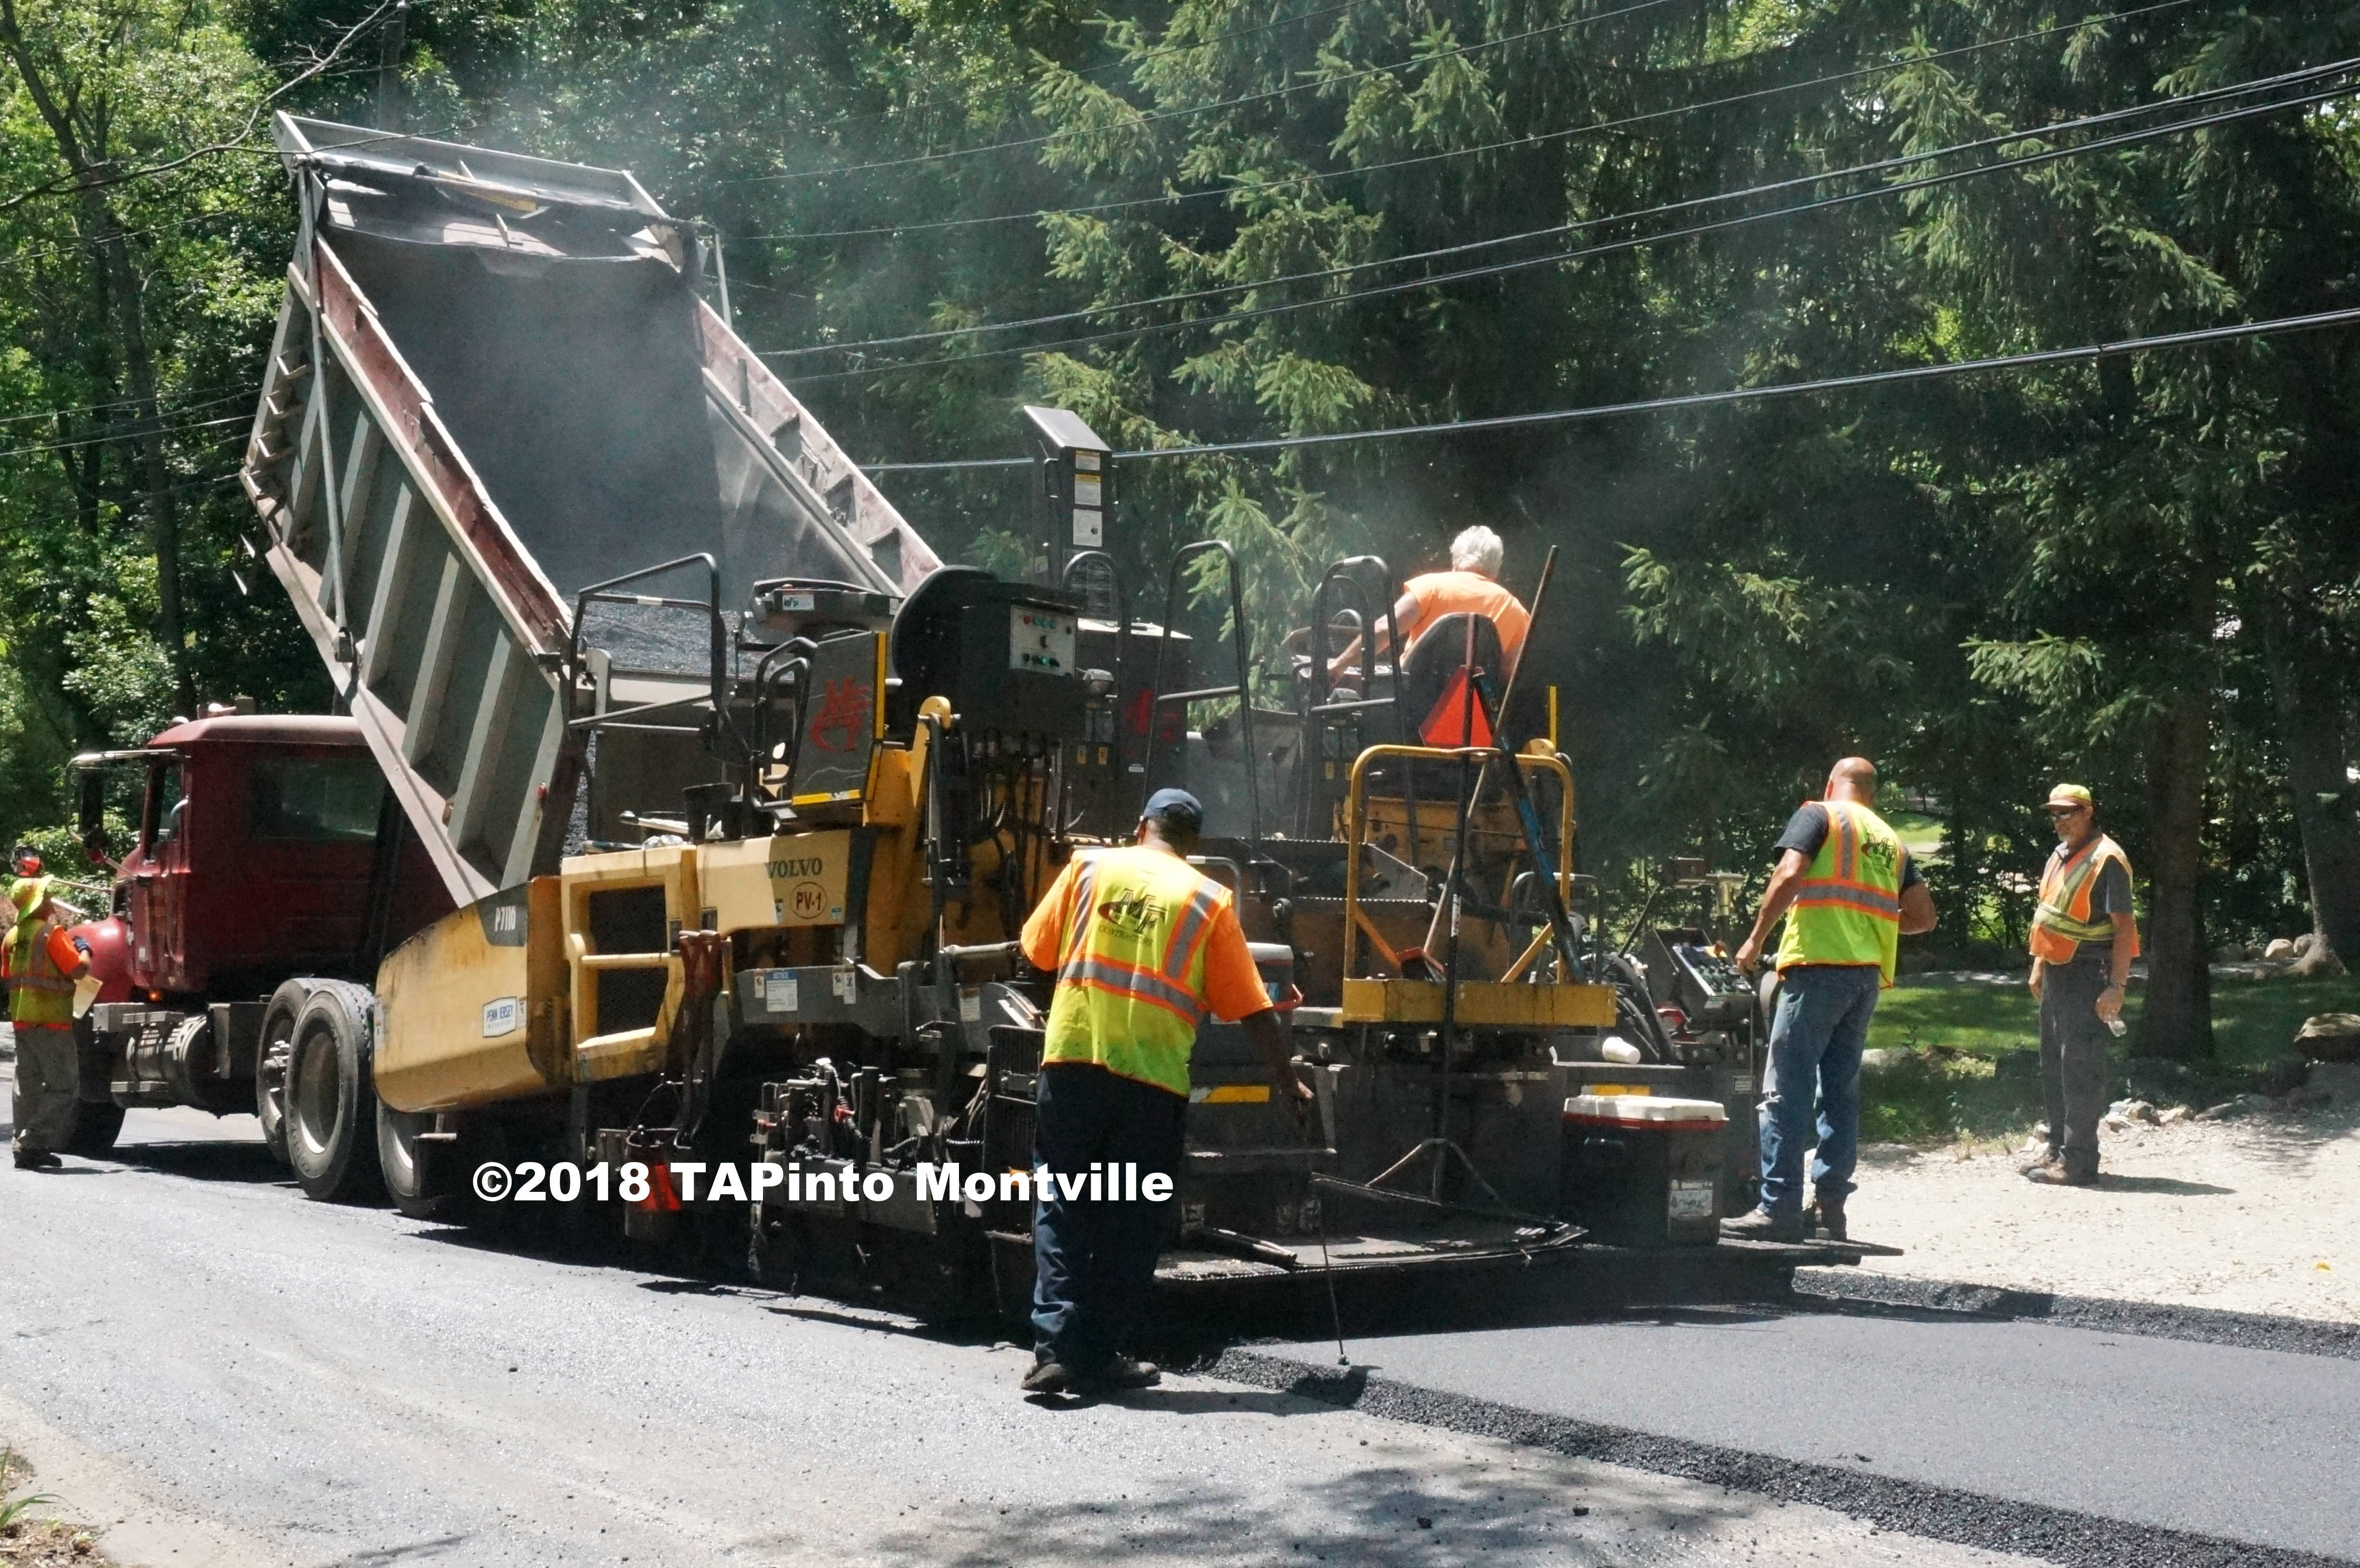 1770be0c927e2c21c4d5_a_Paving_on_Turkey_Hill_Road__2018_TAPinto_Montville__1..JPG